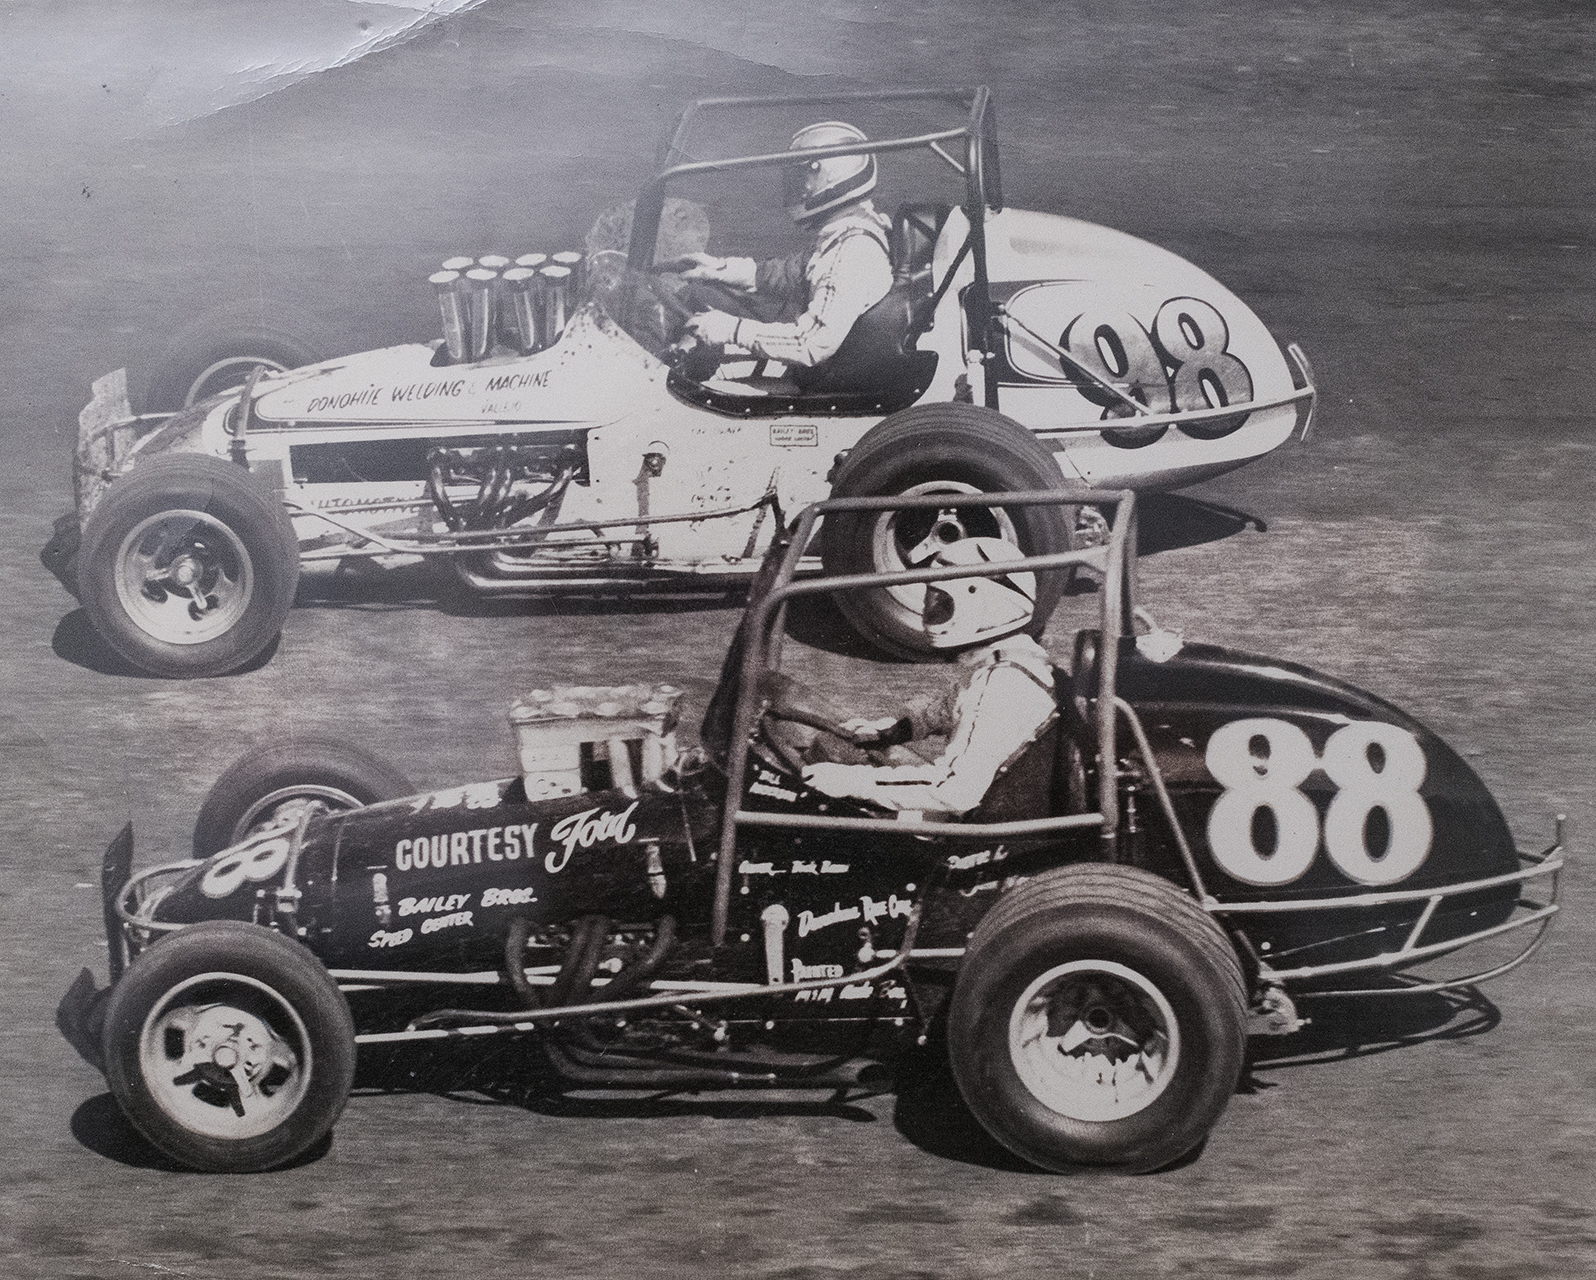 The Anderson brothers,—Johnny (98) and Bill—at Calistoga Speedway, 1974. (Archive photo)